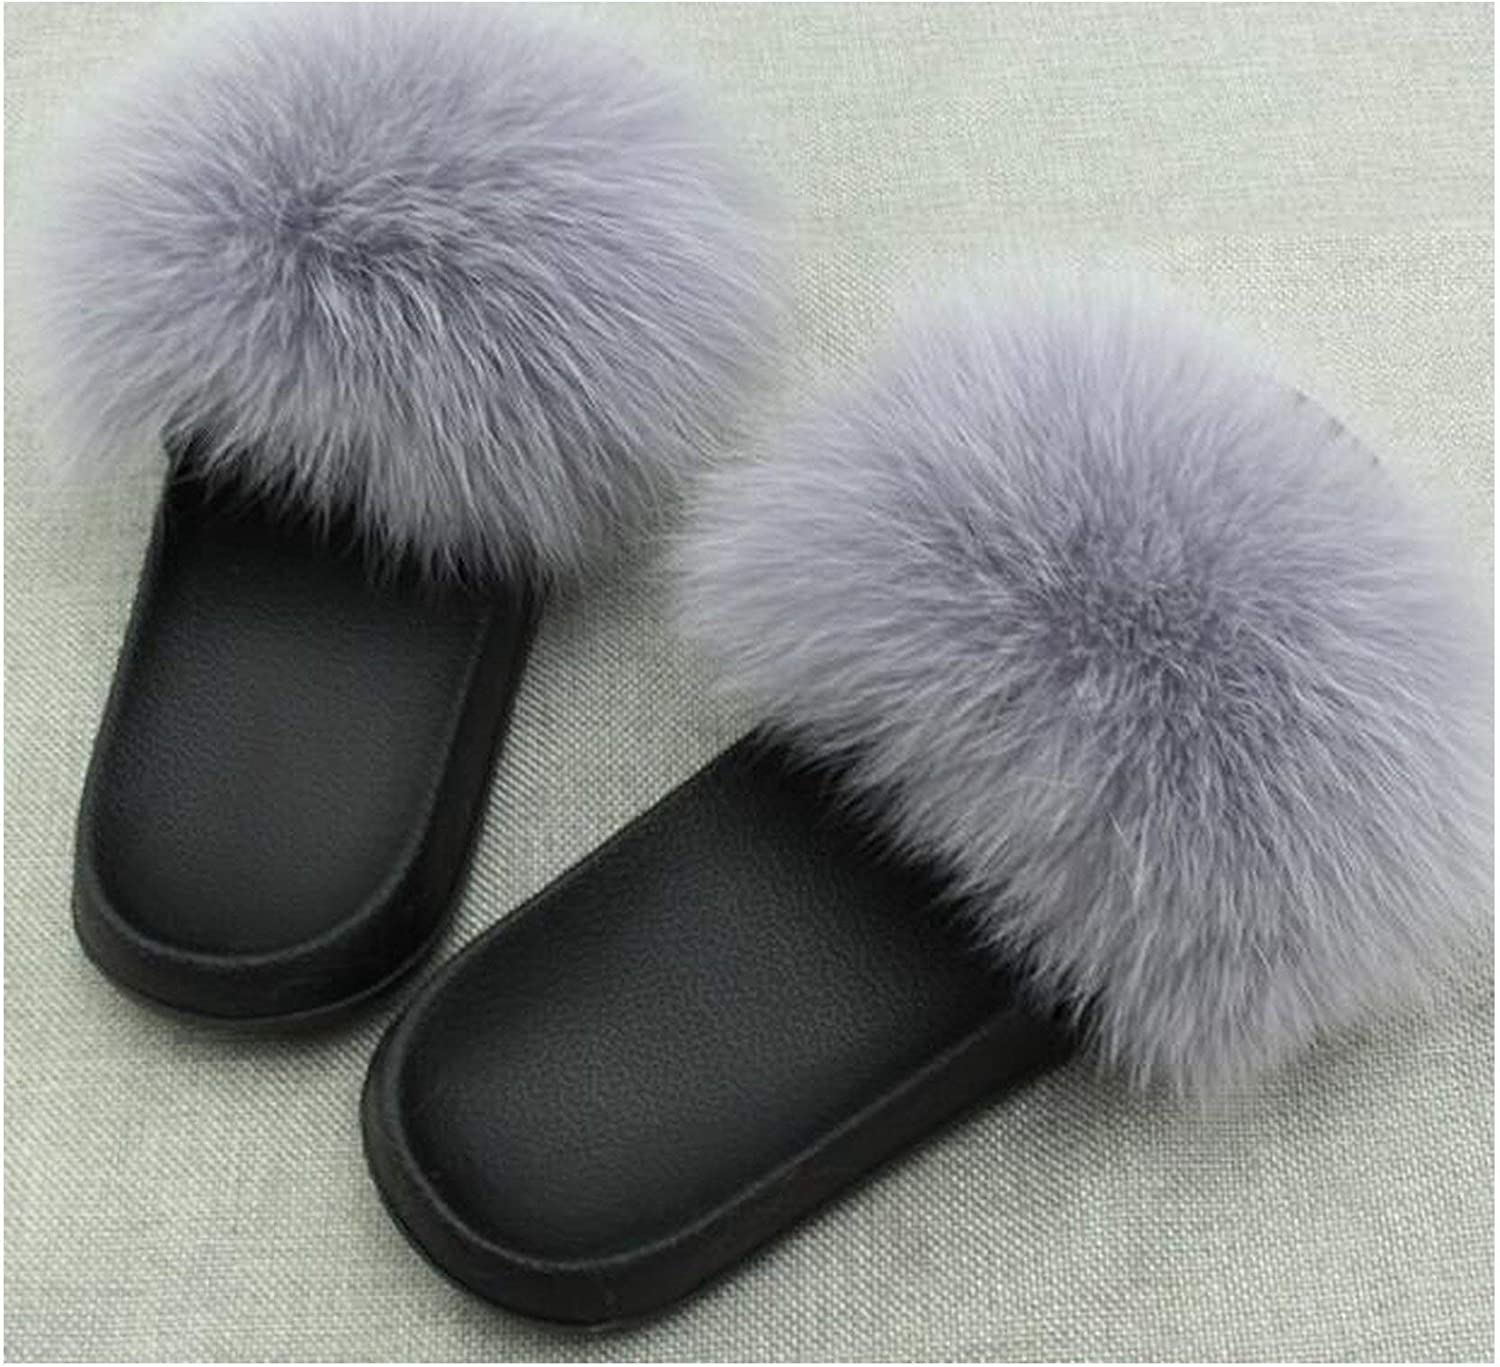 Fox Fur Slippers Slides Shoes Furry Fluffy Slipper Flip Flops Sandals Sliders Drag Sandal,Grey,6